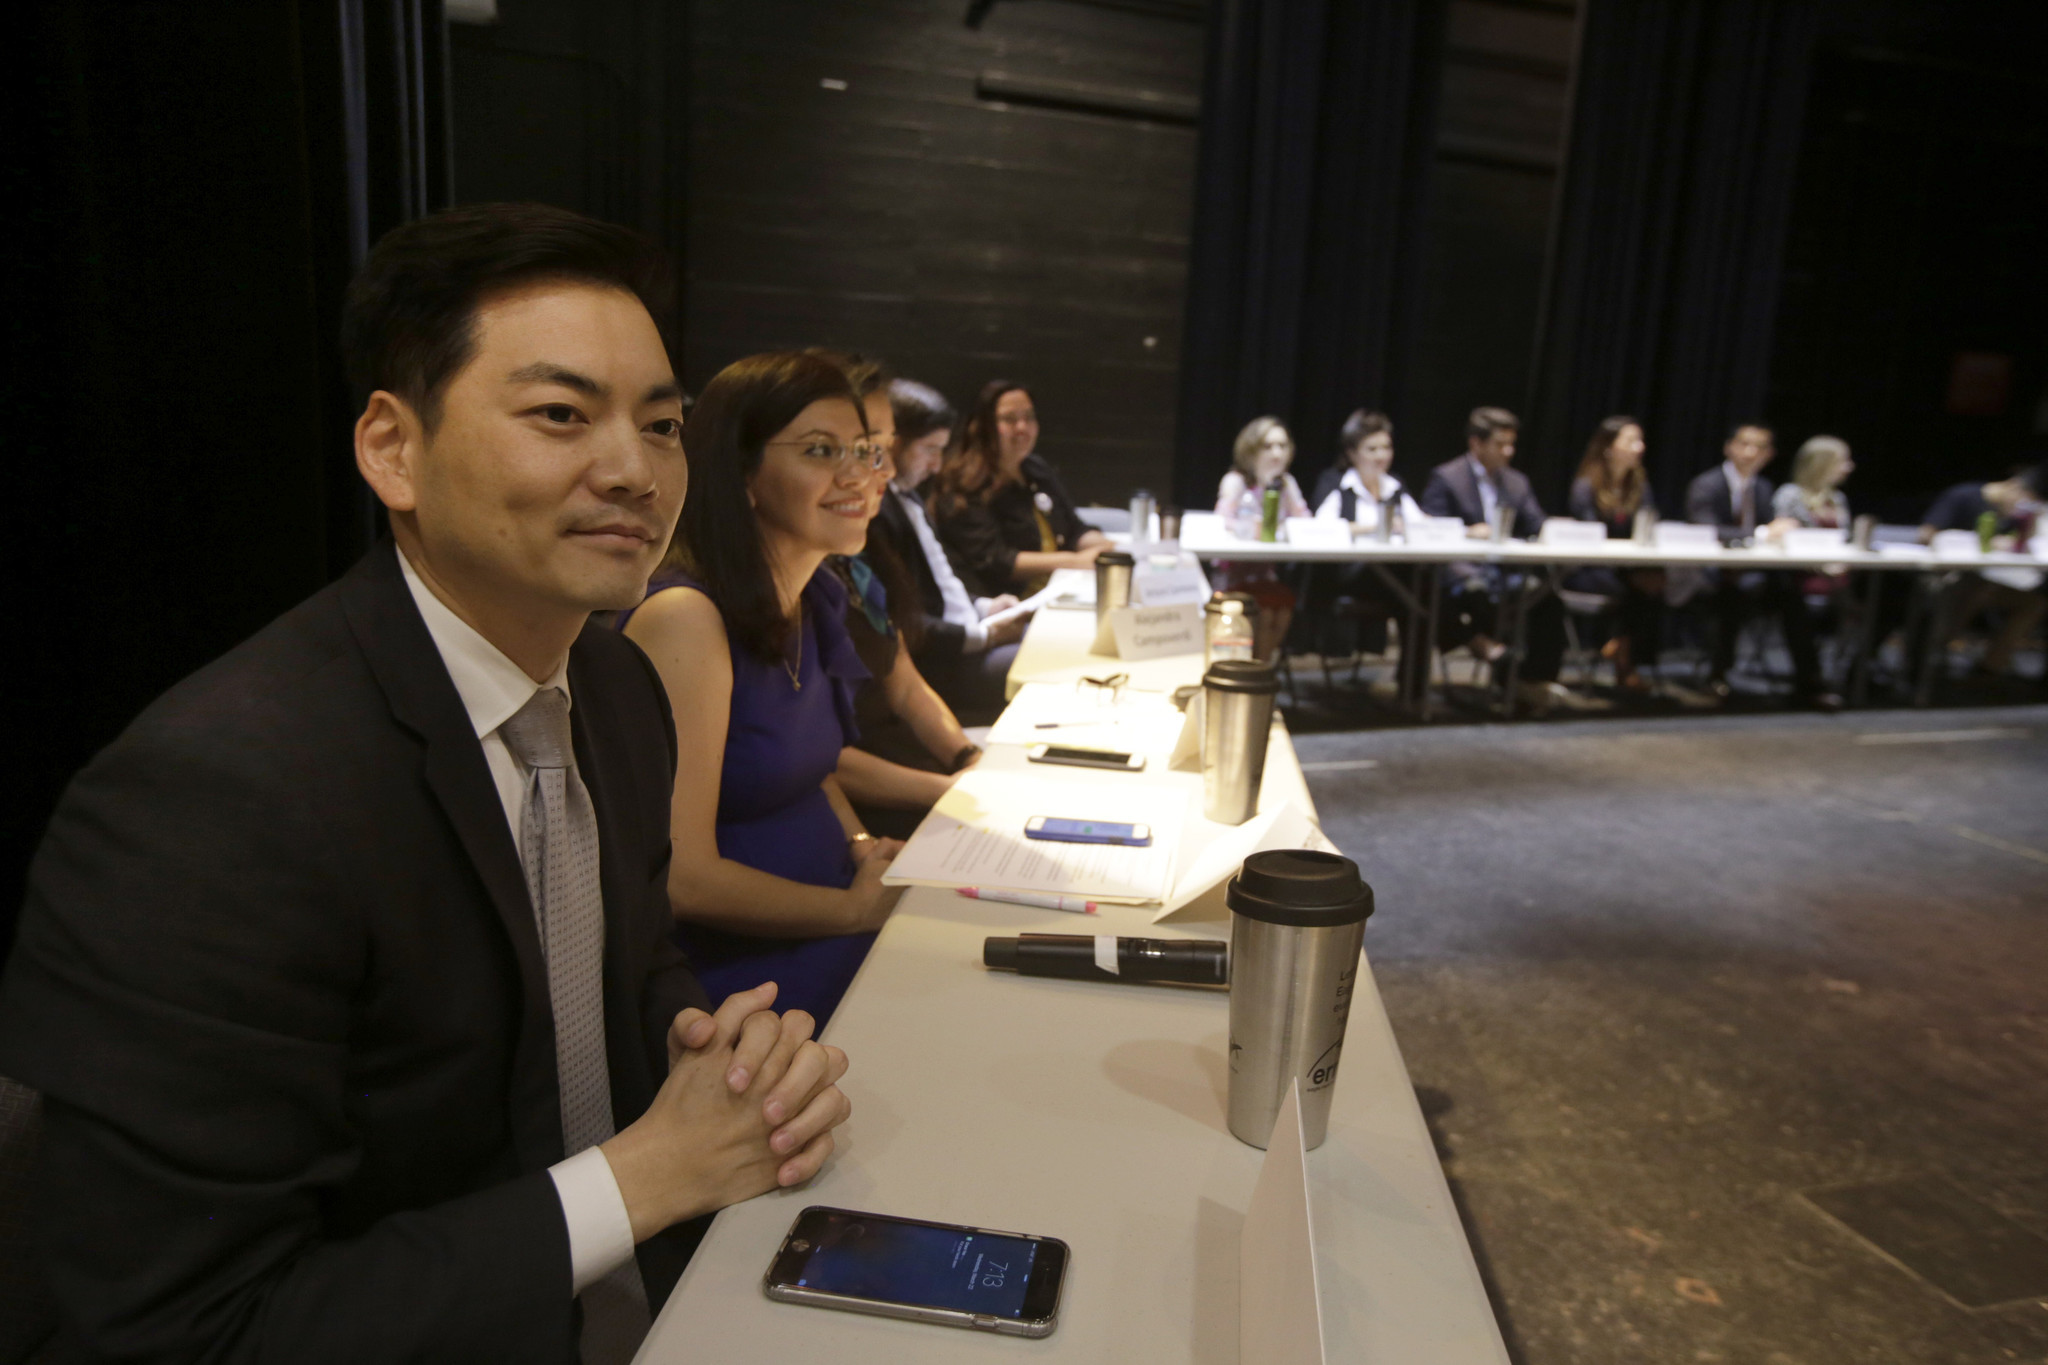 Robert Lee Ahn, left, and Vanessa Aramayo, second from left, join the other candidates  for the 34th Congressional District. (Glenn Koenig / Los Angeles TImes)